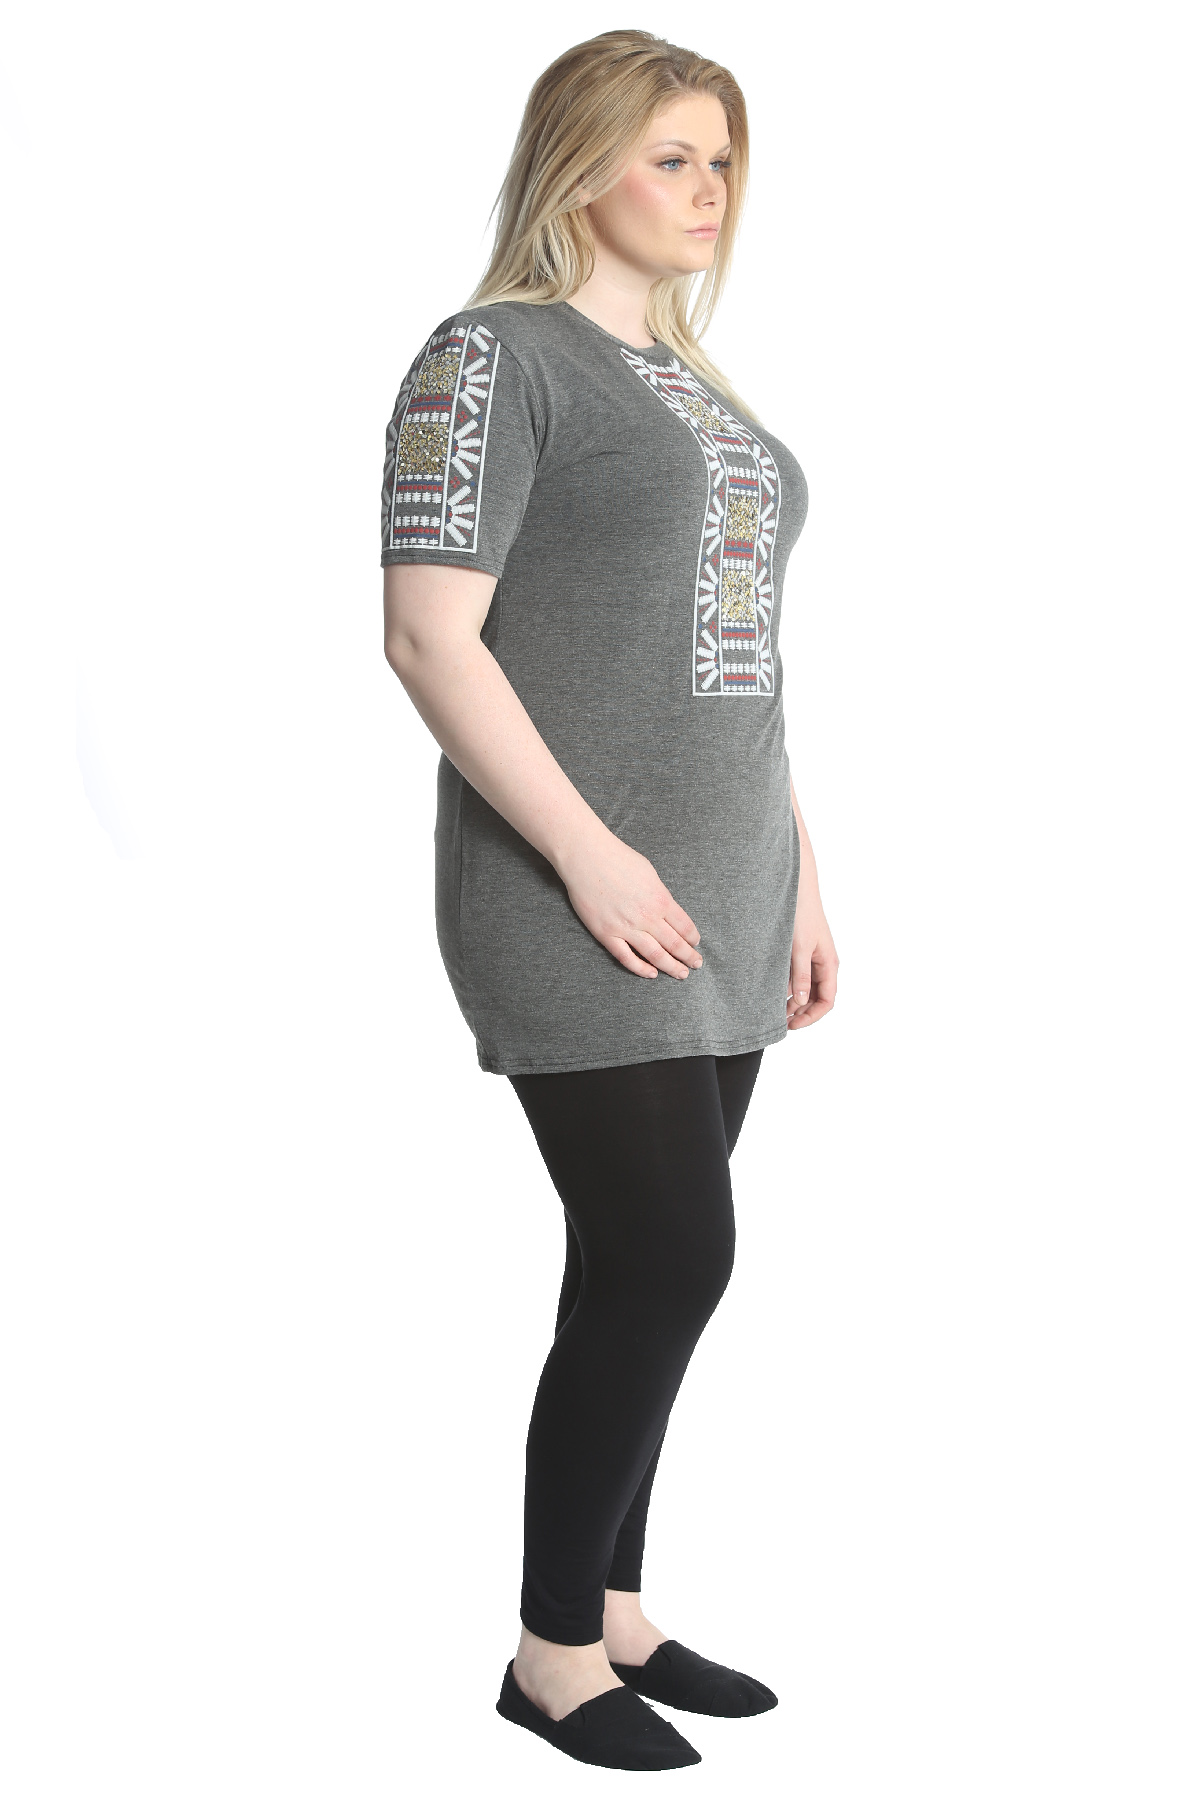 New Ladies Plus Size Tops Womens Tunic Embroidery Sequin ...